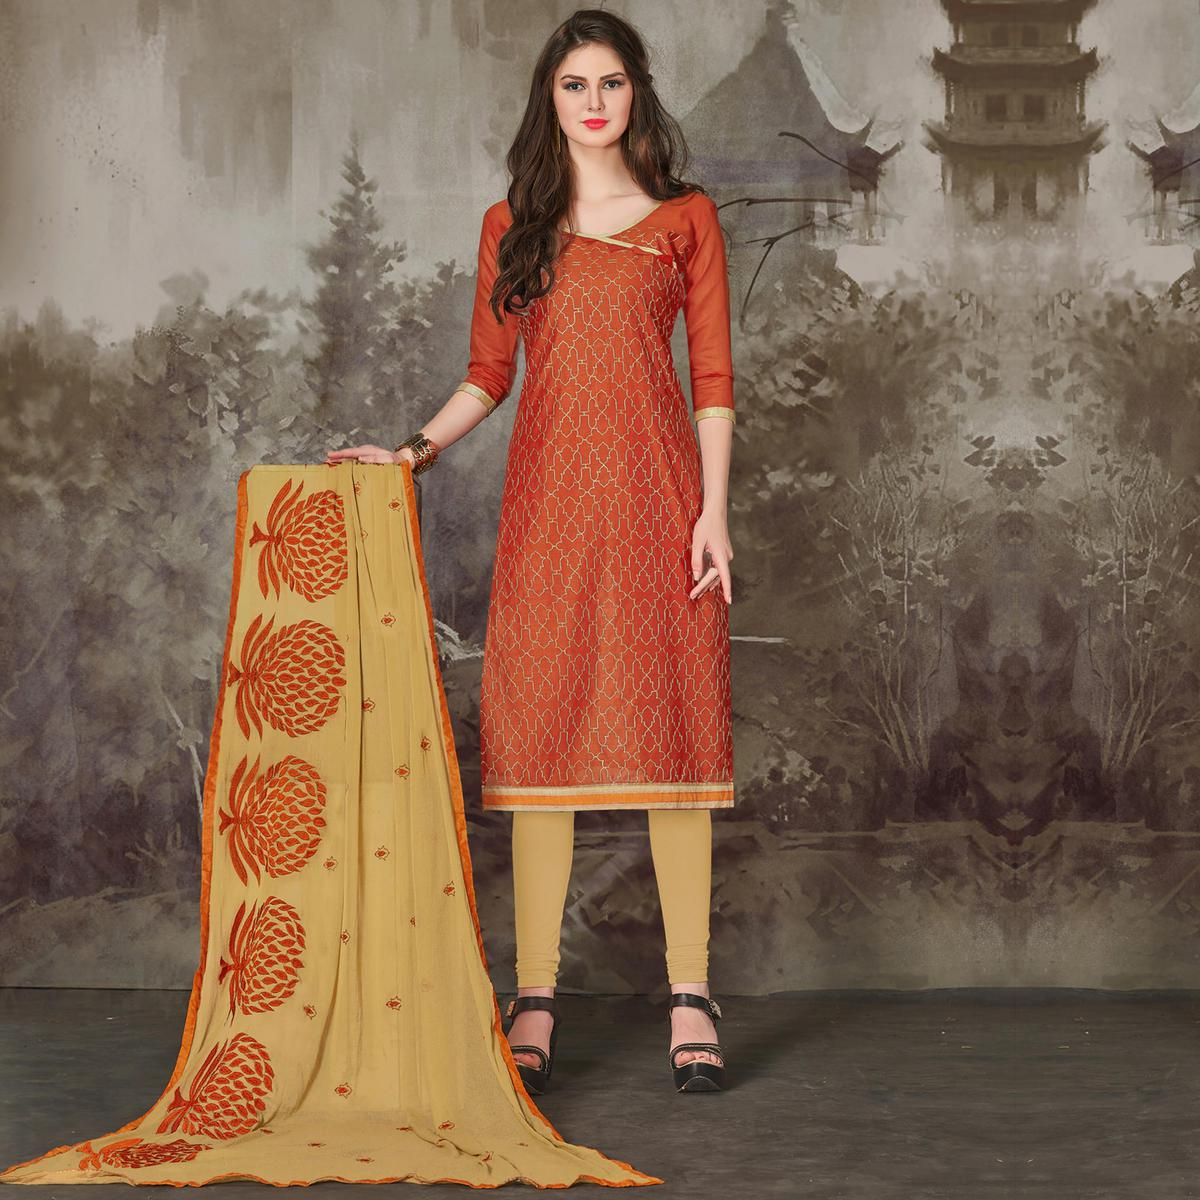 Eye-Catching Orange Colored Casual Embroidered Chanderi Silk Suit